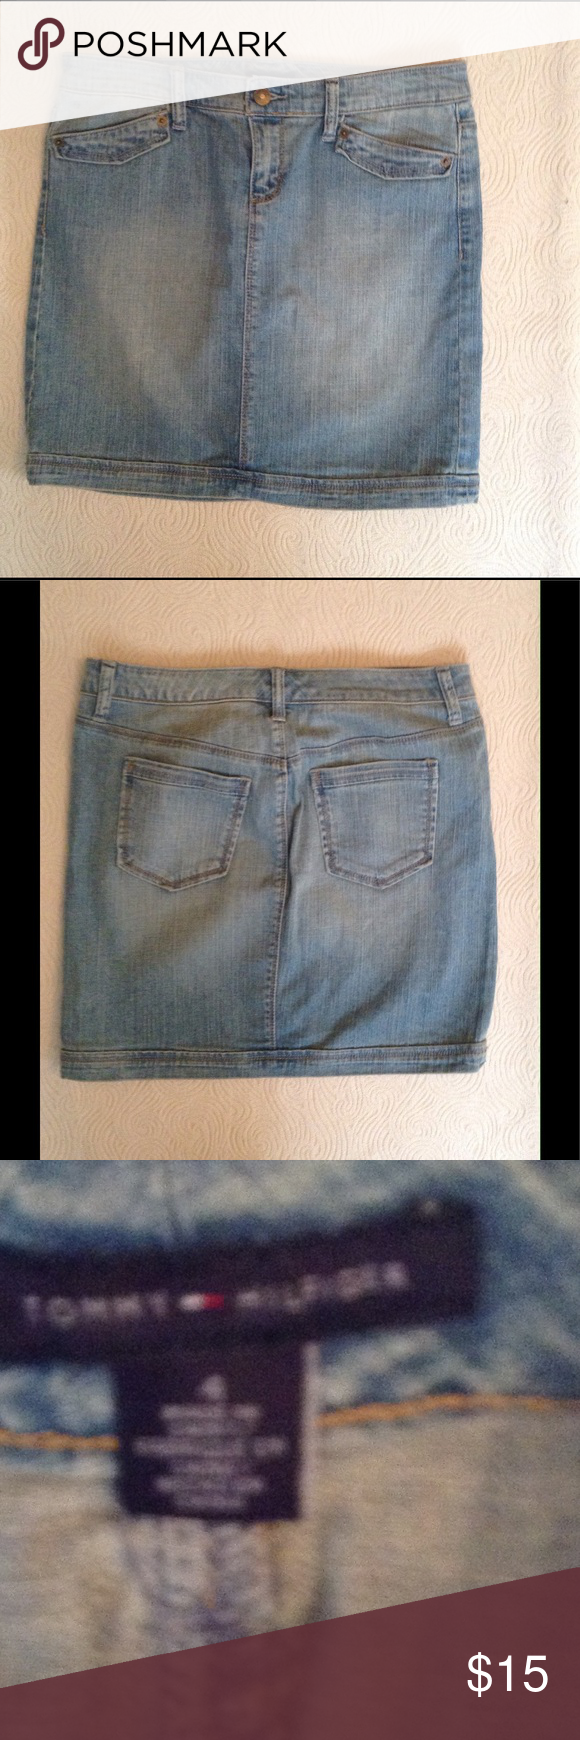 TOMMY HILFIGER denim skirt Cute little TH jean skirt, light wash in excellent condition Tommy Hilfiger Skirts Mini